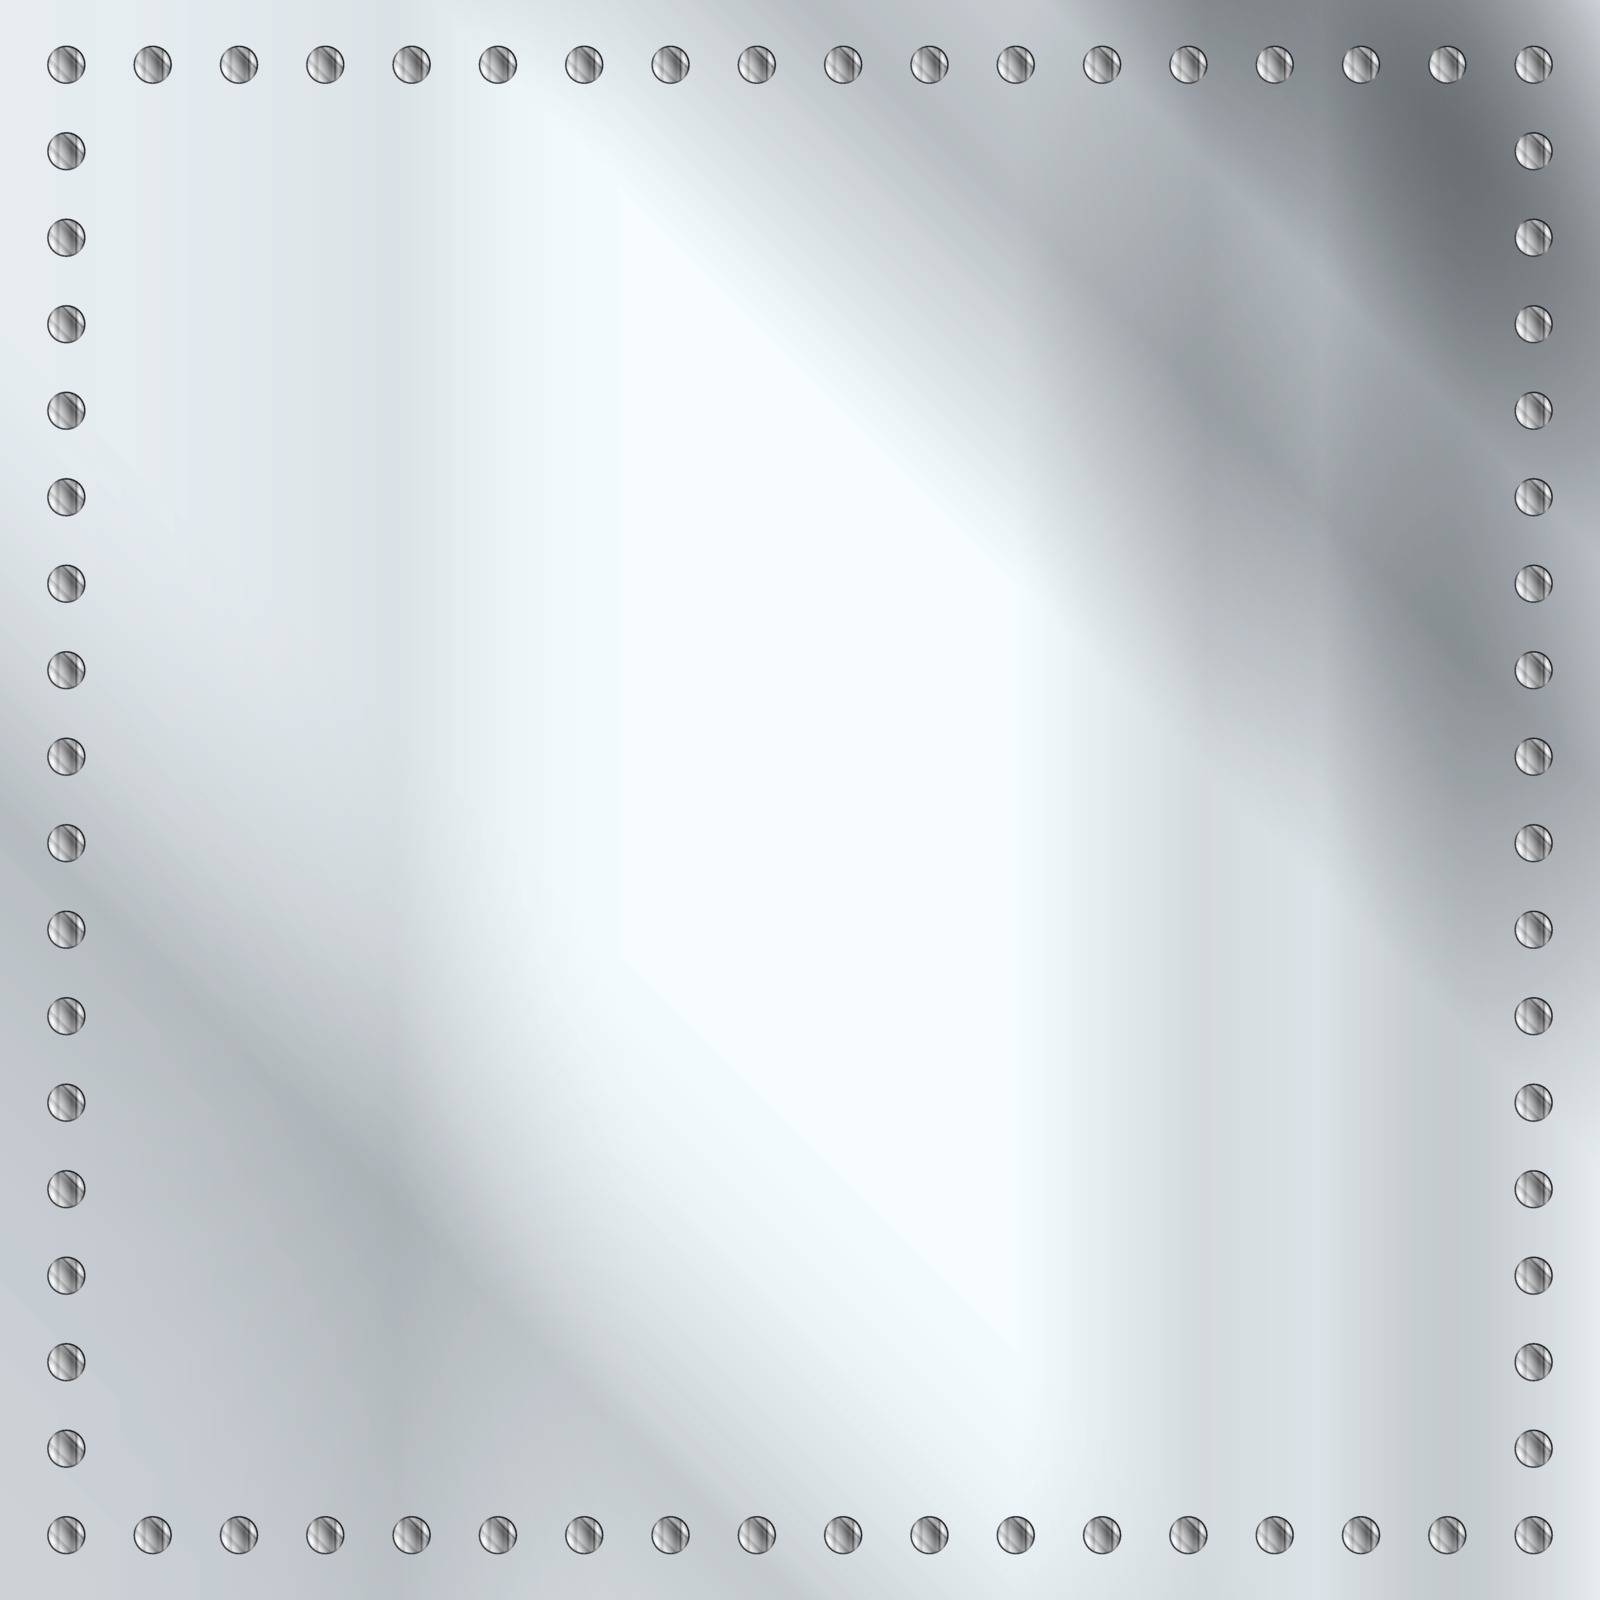 A steel or silver plate background with a rivet border